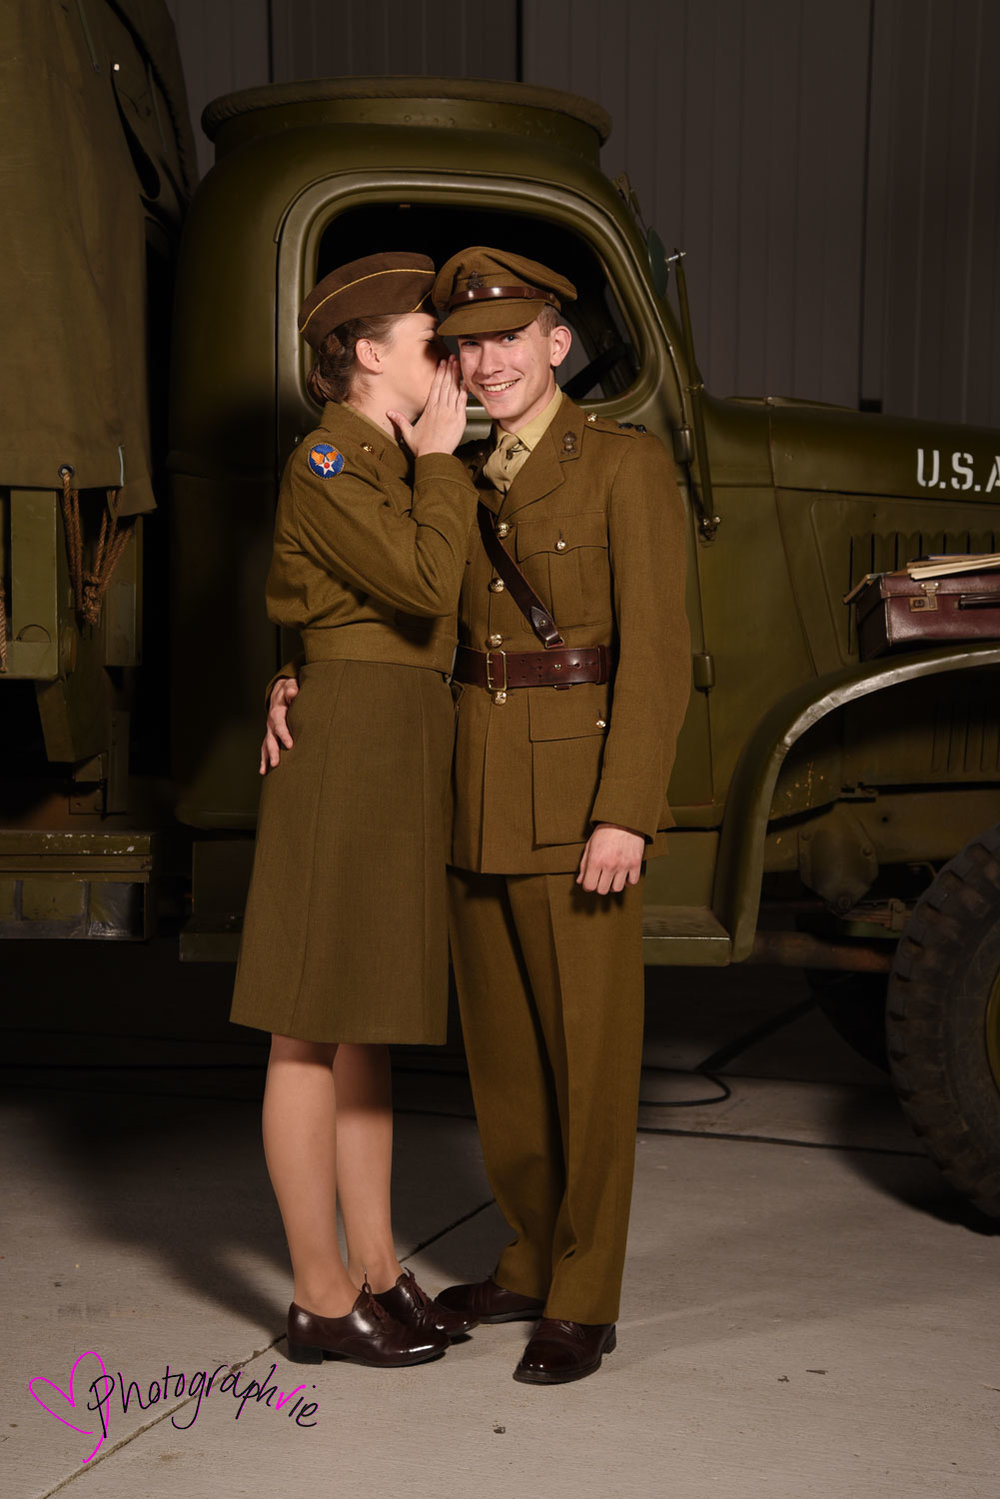 Imperial-War-Museum-House-of-Cambridge-Event-40s-Dressing-Up-Pin-up-Photobooth-and-Photos-by-Photographvie-Ely--(19).jpg